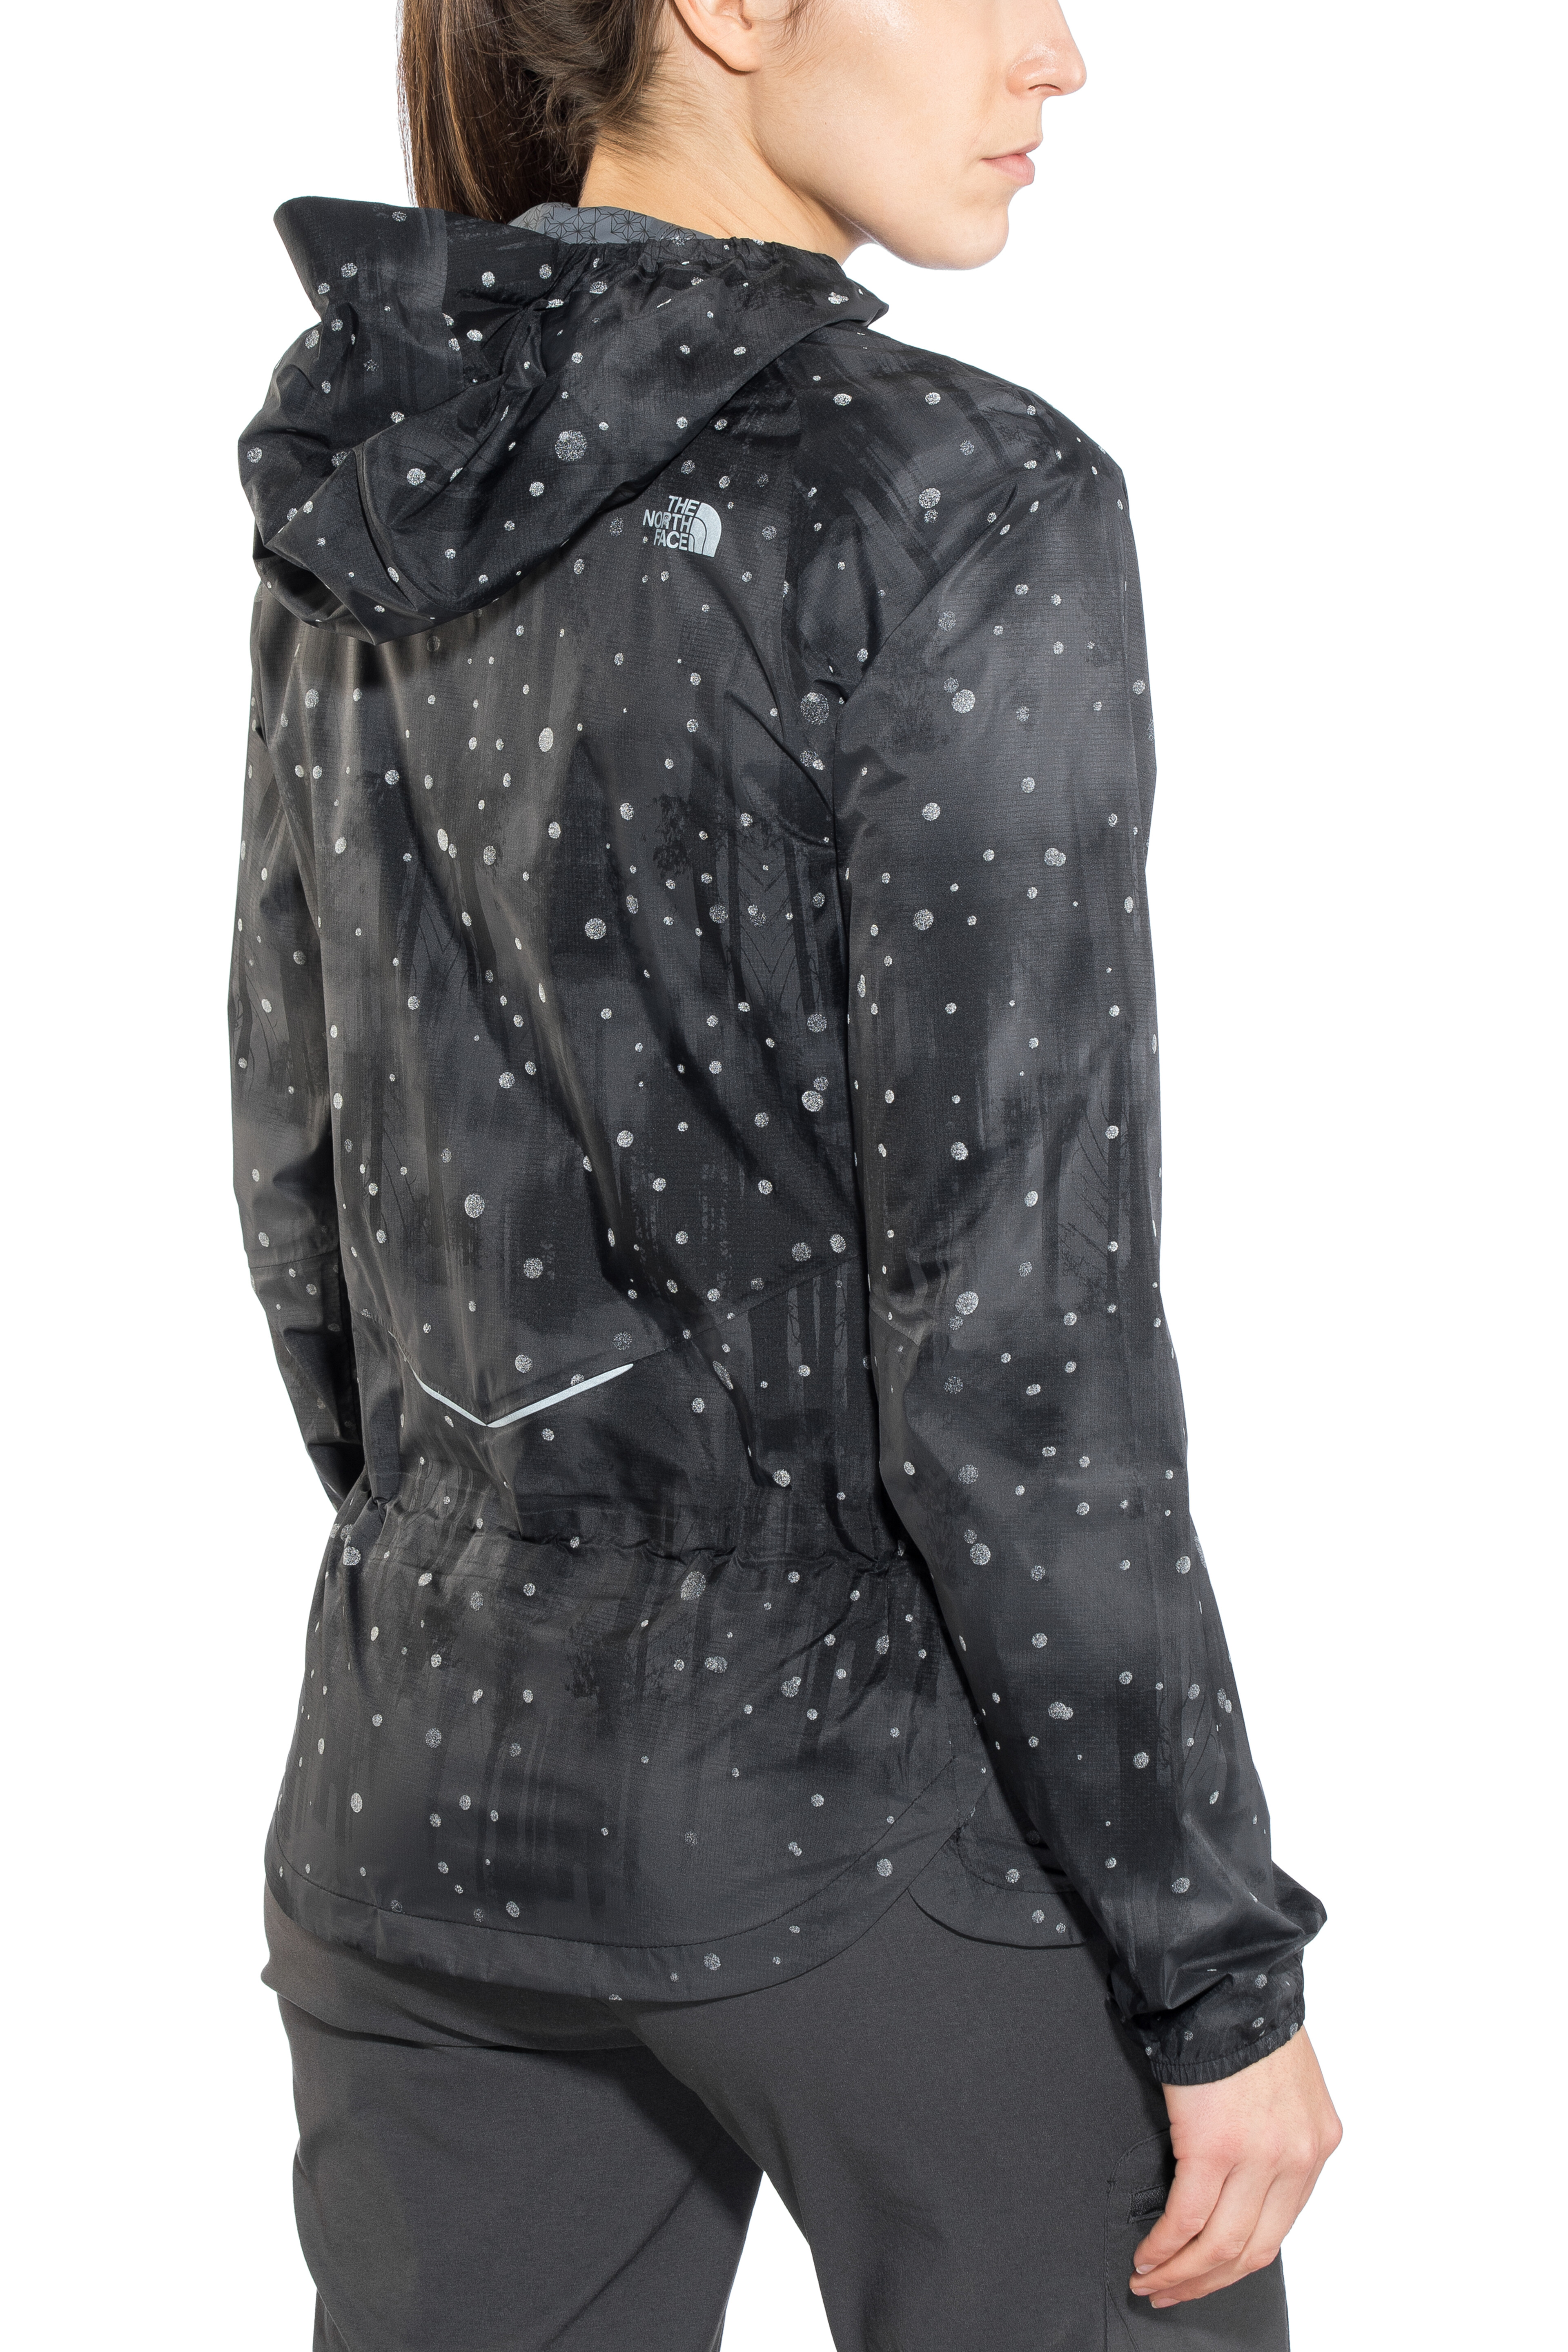 1c966a097 The North Face Stormy Trail Jacket Women tnf black reflective firefly print